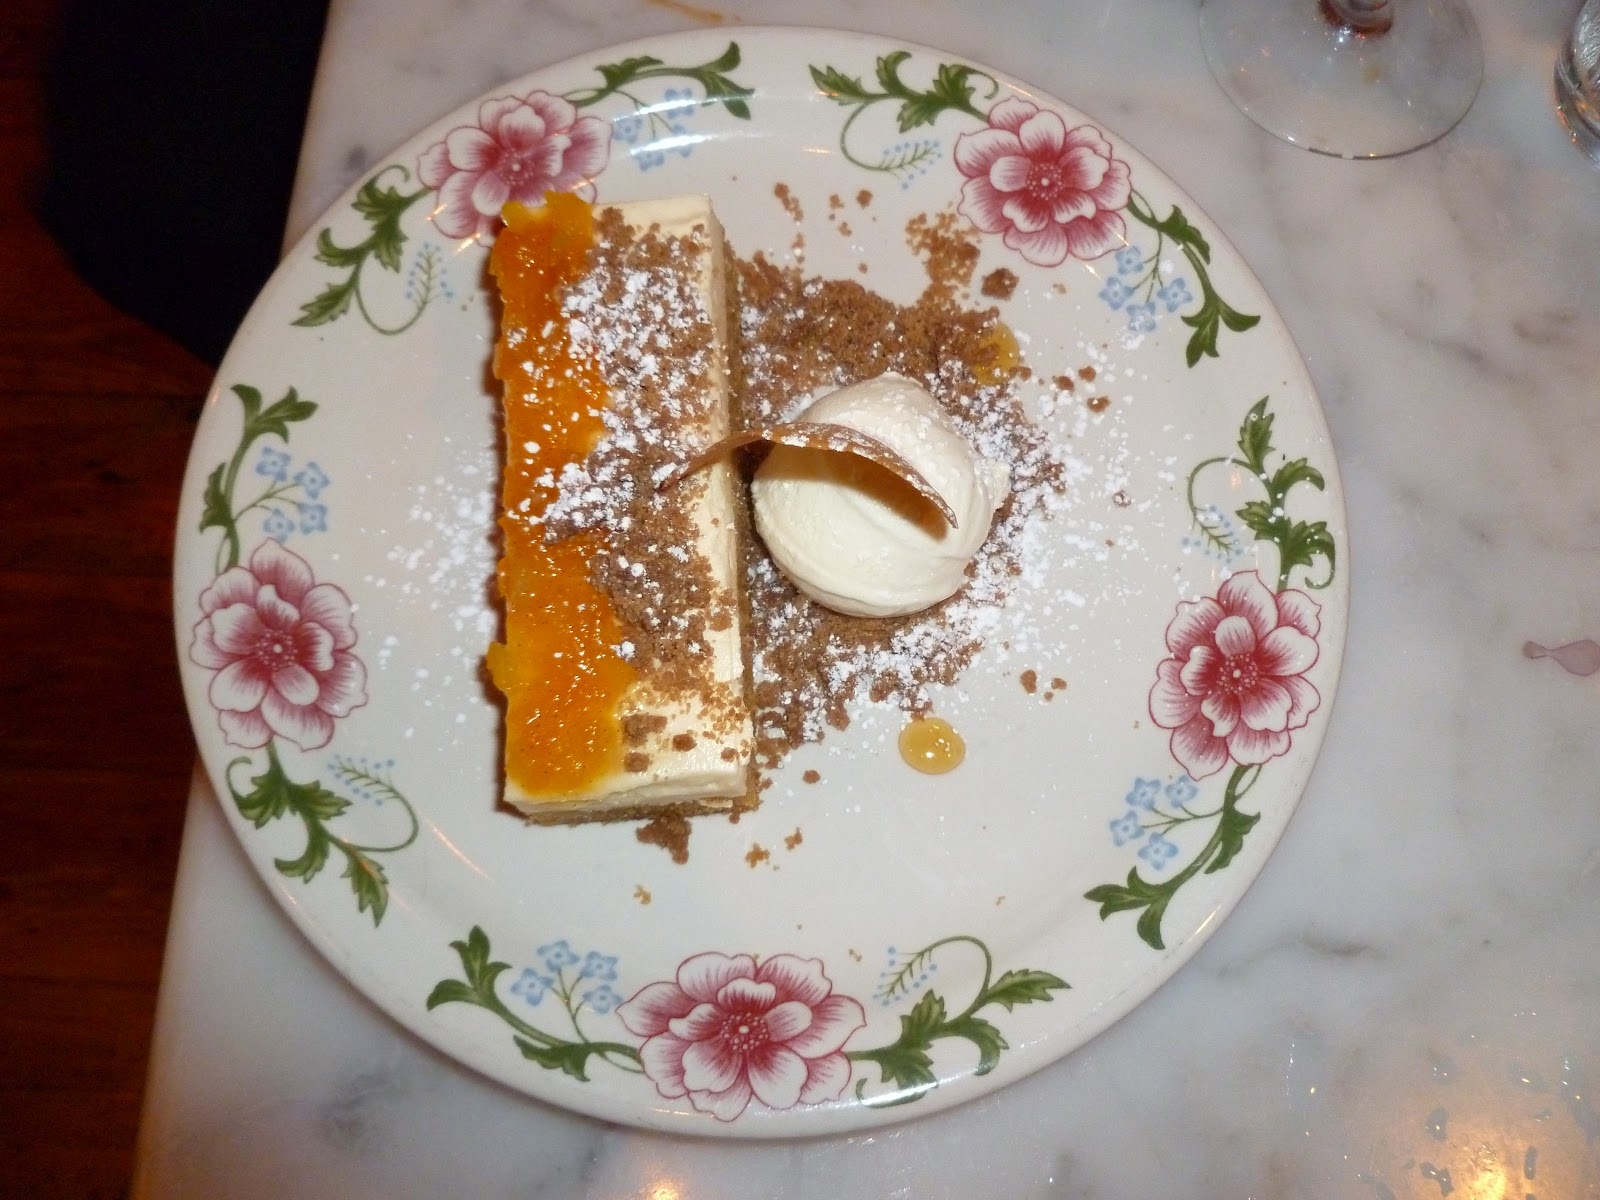 The Pastry Chef's Baking: August 2012